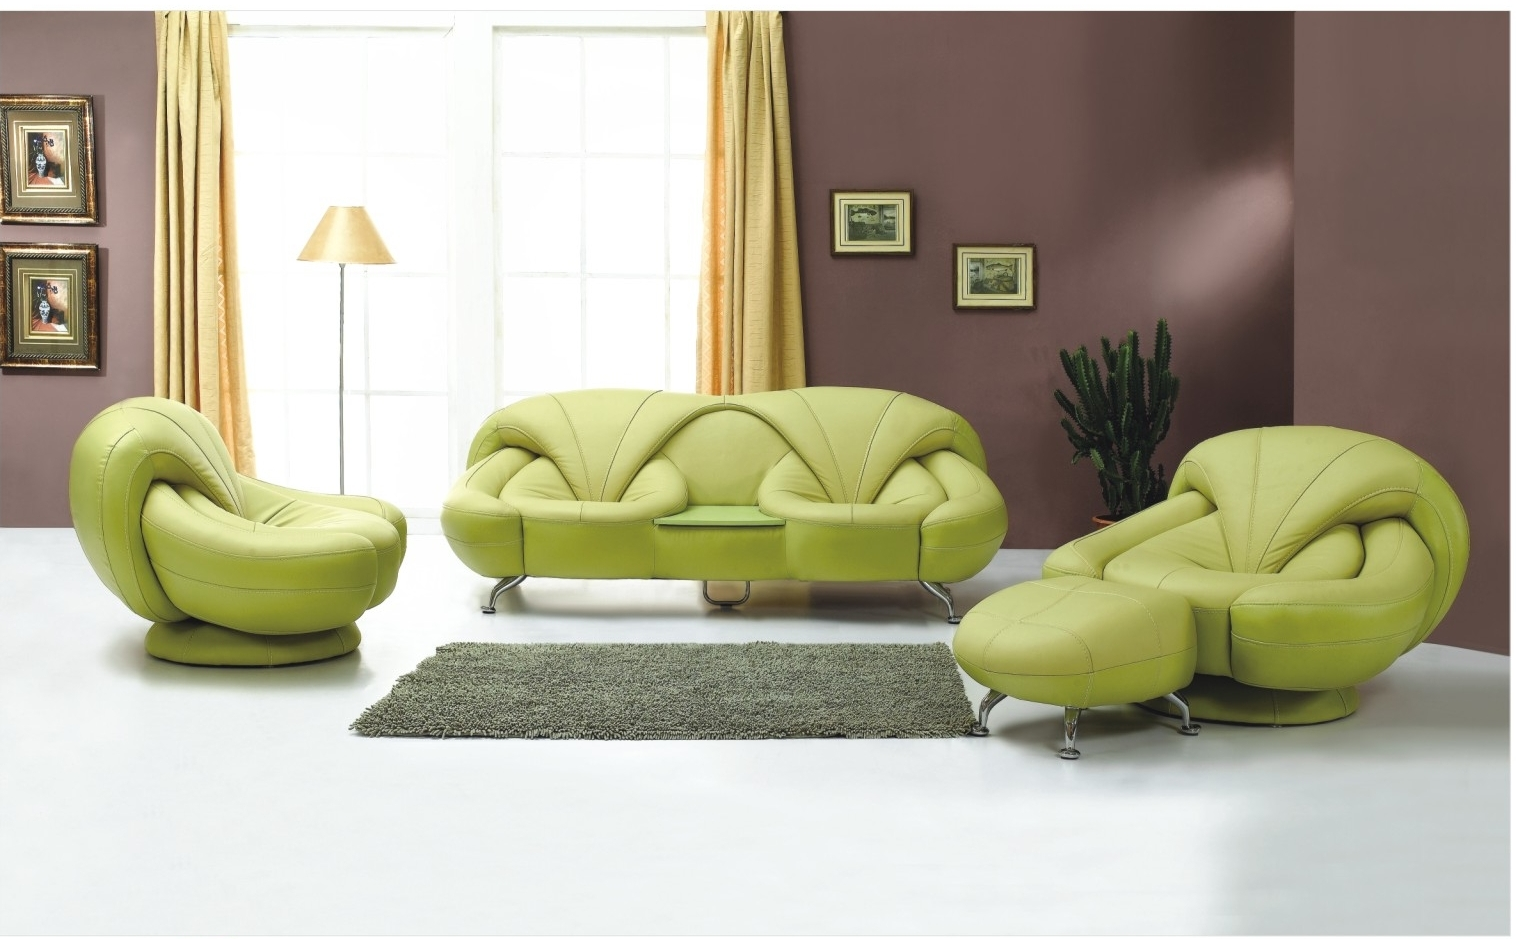 Featured Image of Unique Stylish Living Room Sofa And Carpet